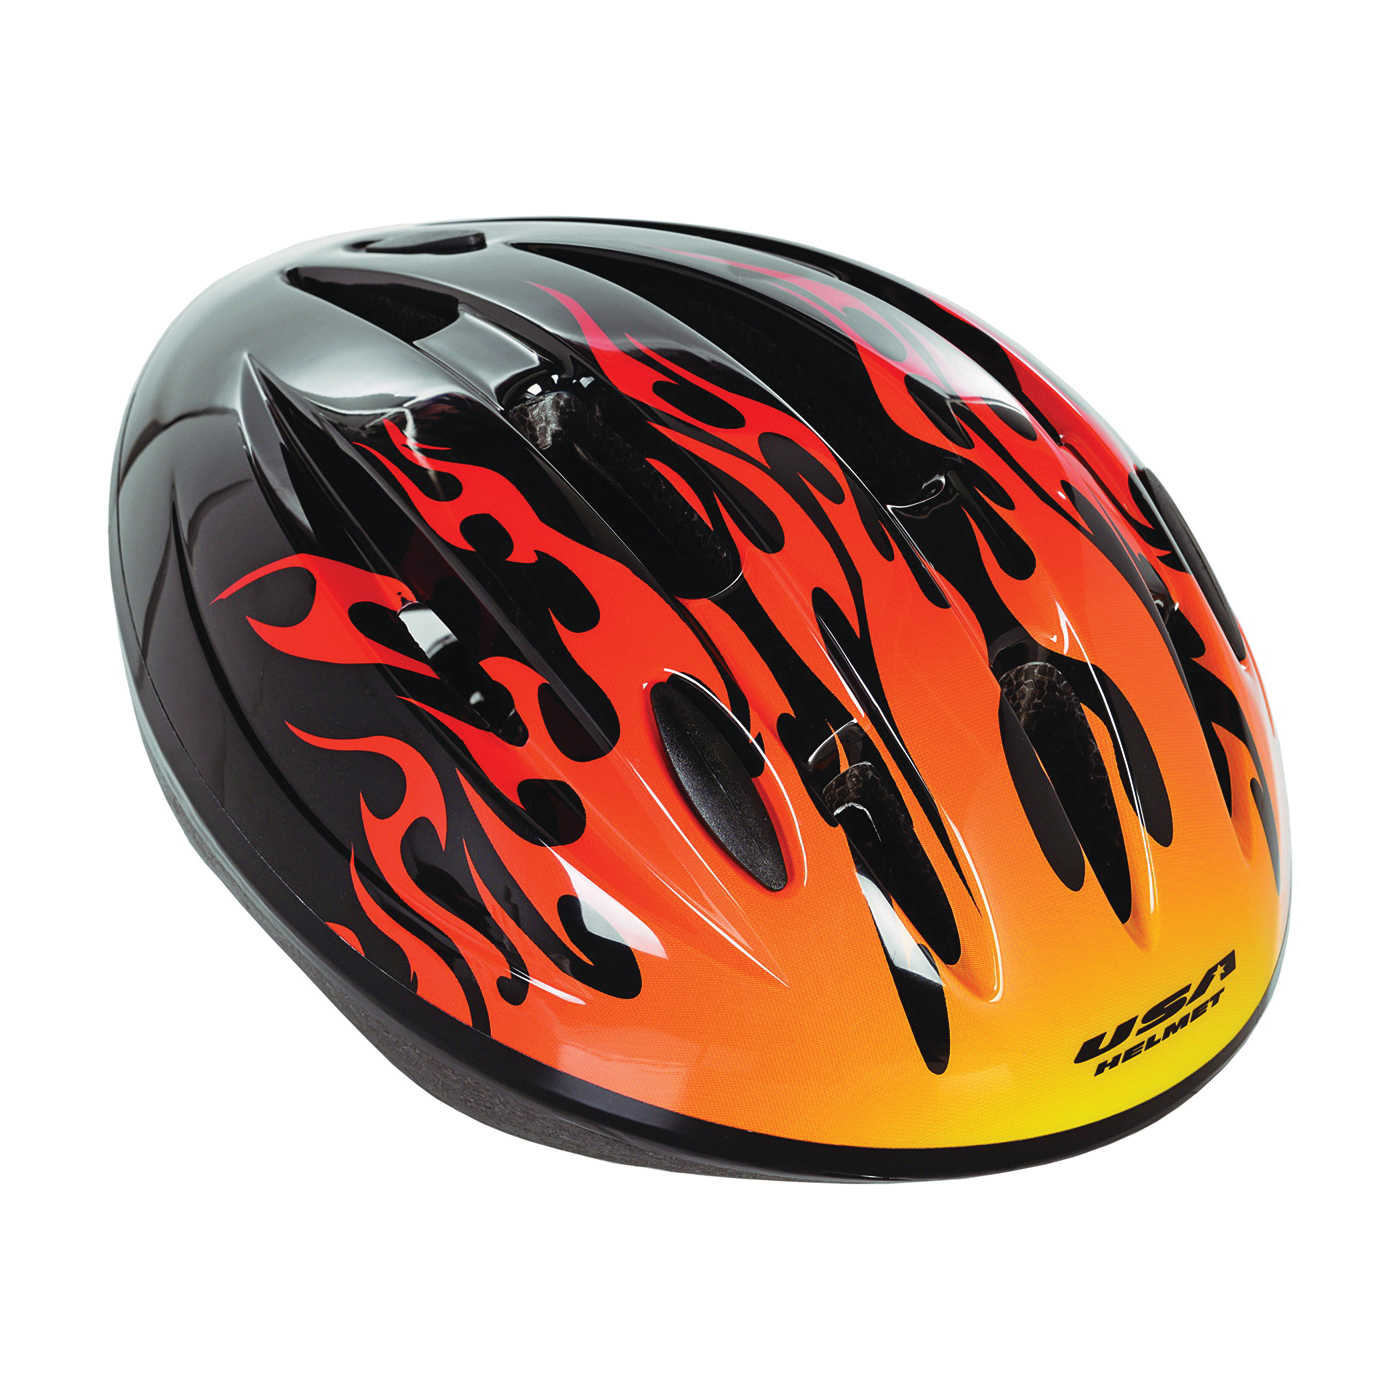 Picture of Kent 64151 Child Helmet, For: 21-1/2 to 22-1/2 in Head Size and 5 to 8 Years Children